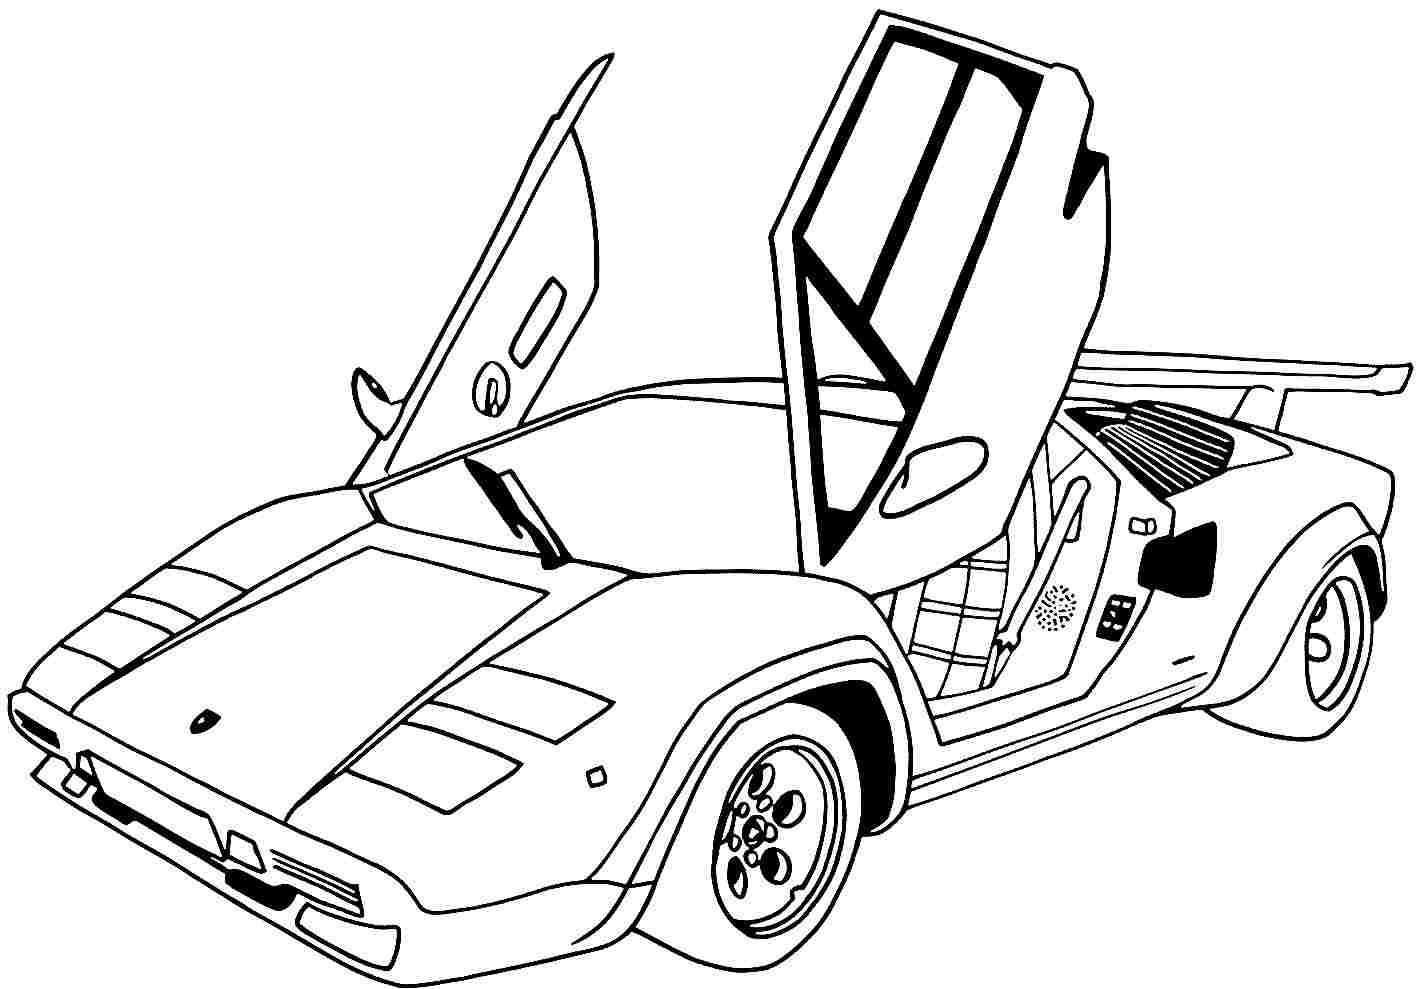 Coloring Pages Cars to Print Free Coloring Books to Print – Free ...